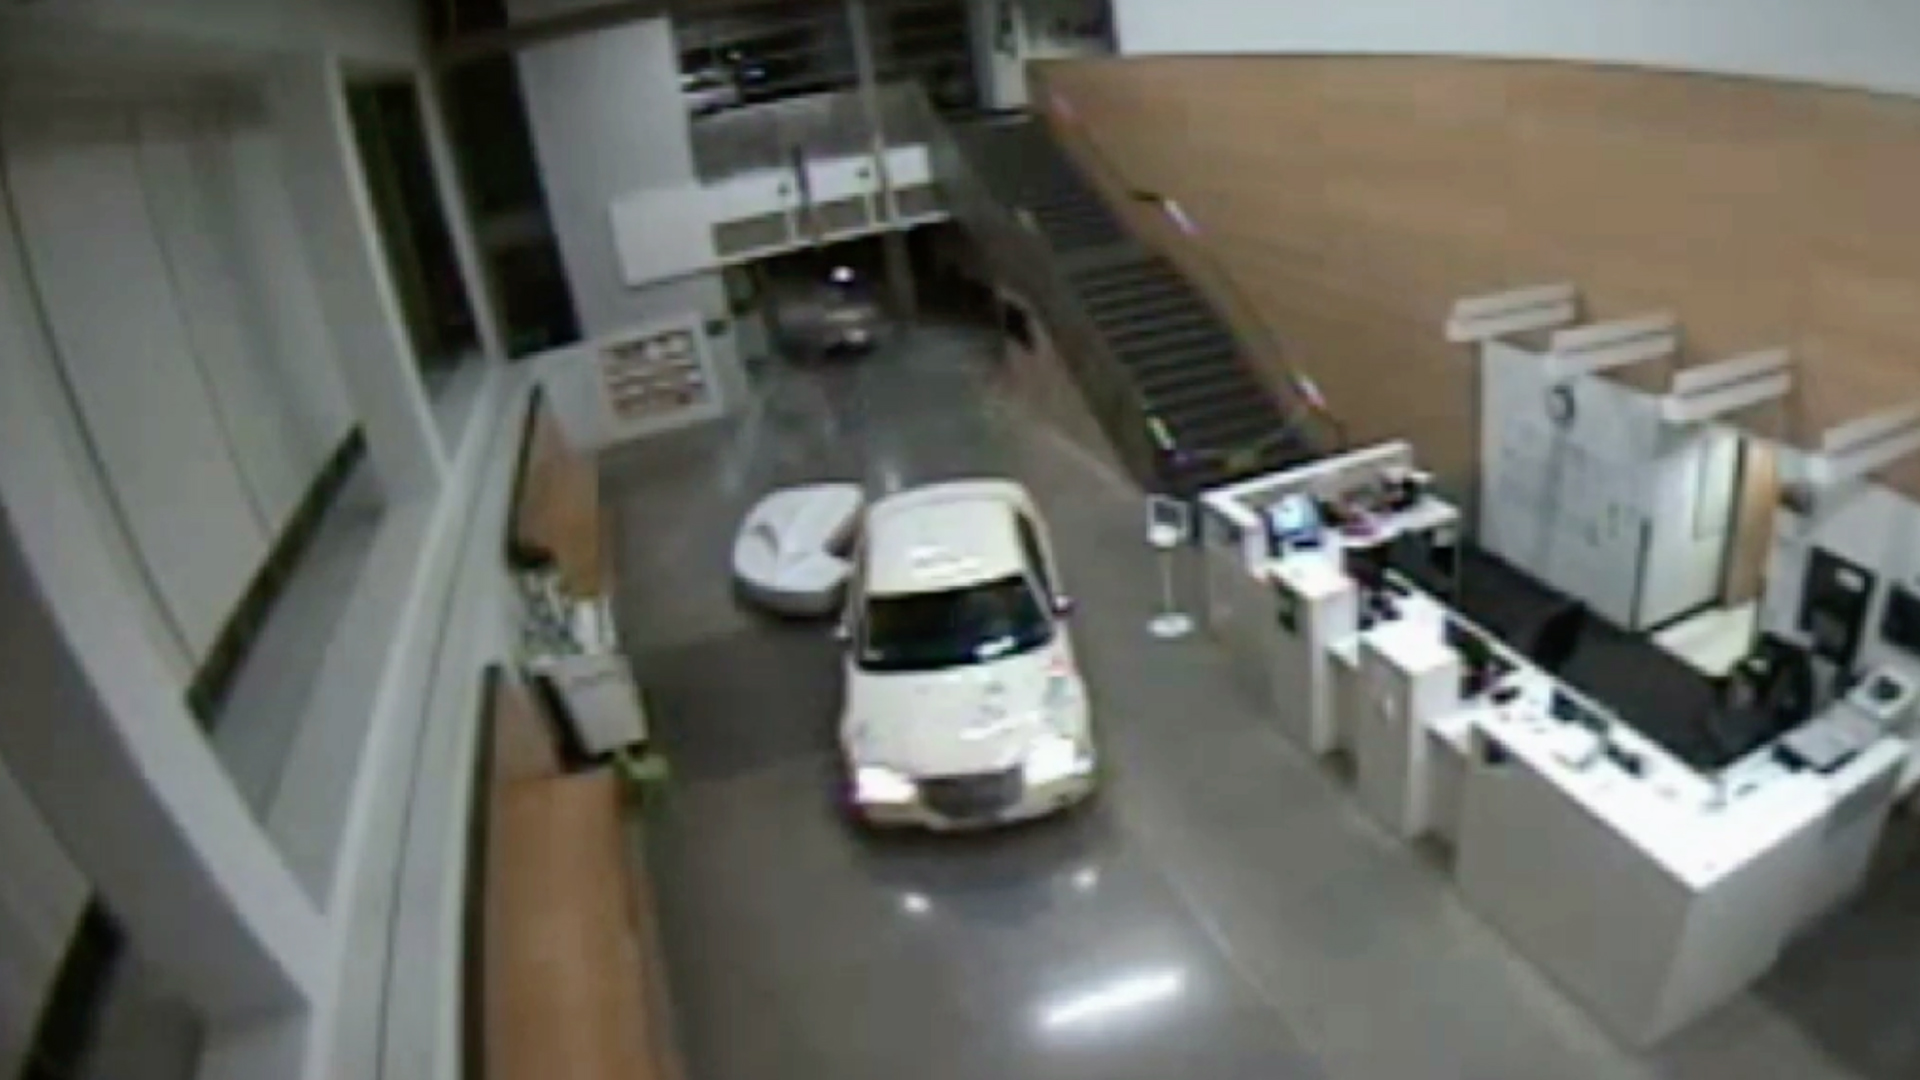 A car smashed through the lobby of the Los Angeles Police Department's San Pedro Station on Feb. 9, 2019. (Credit: LAPD)